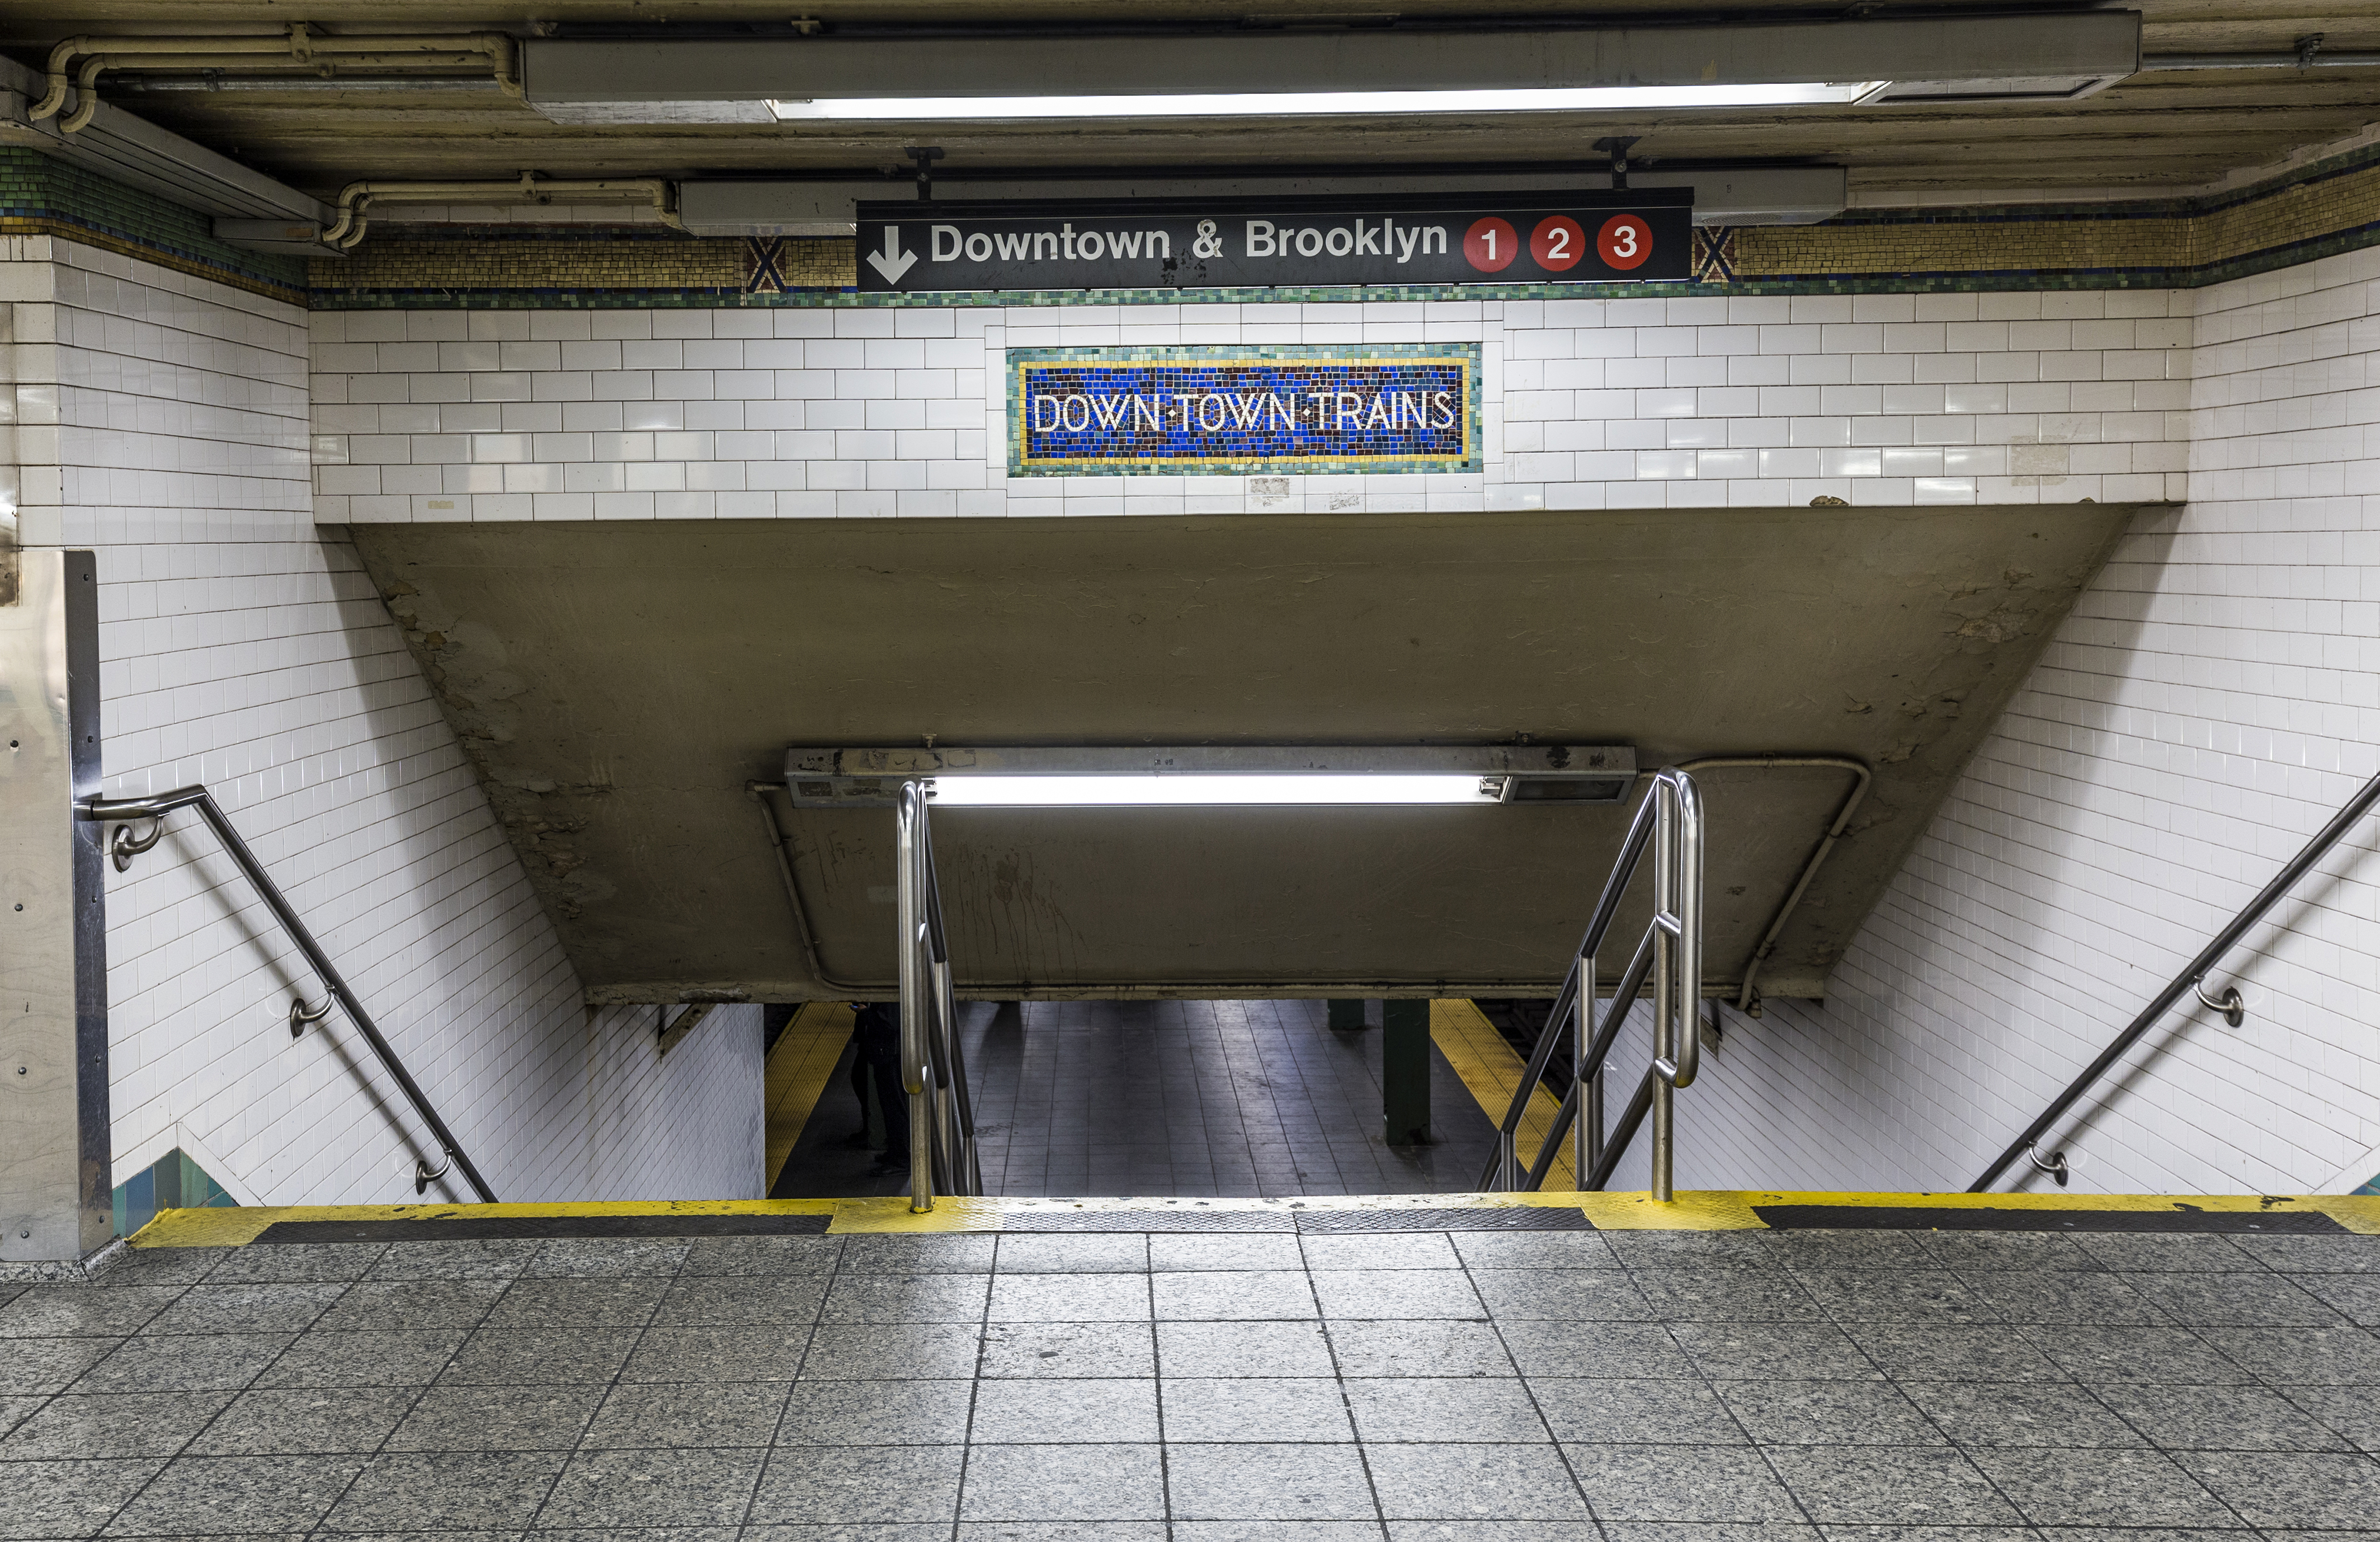 """A staircase that leads to a train platform at a NYC subway station. A sign says """"Downtown & Brooklyn"""" with an arrow pointing down."""